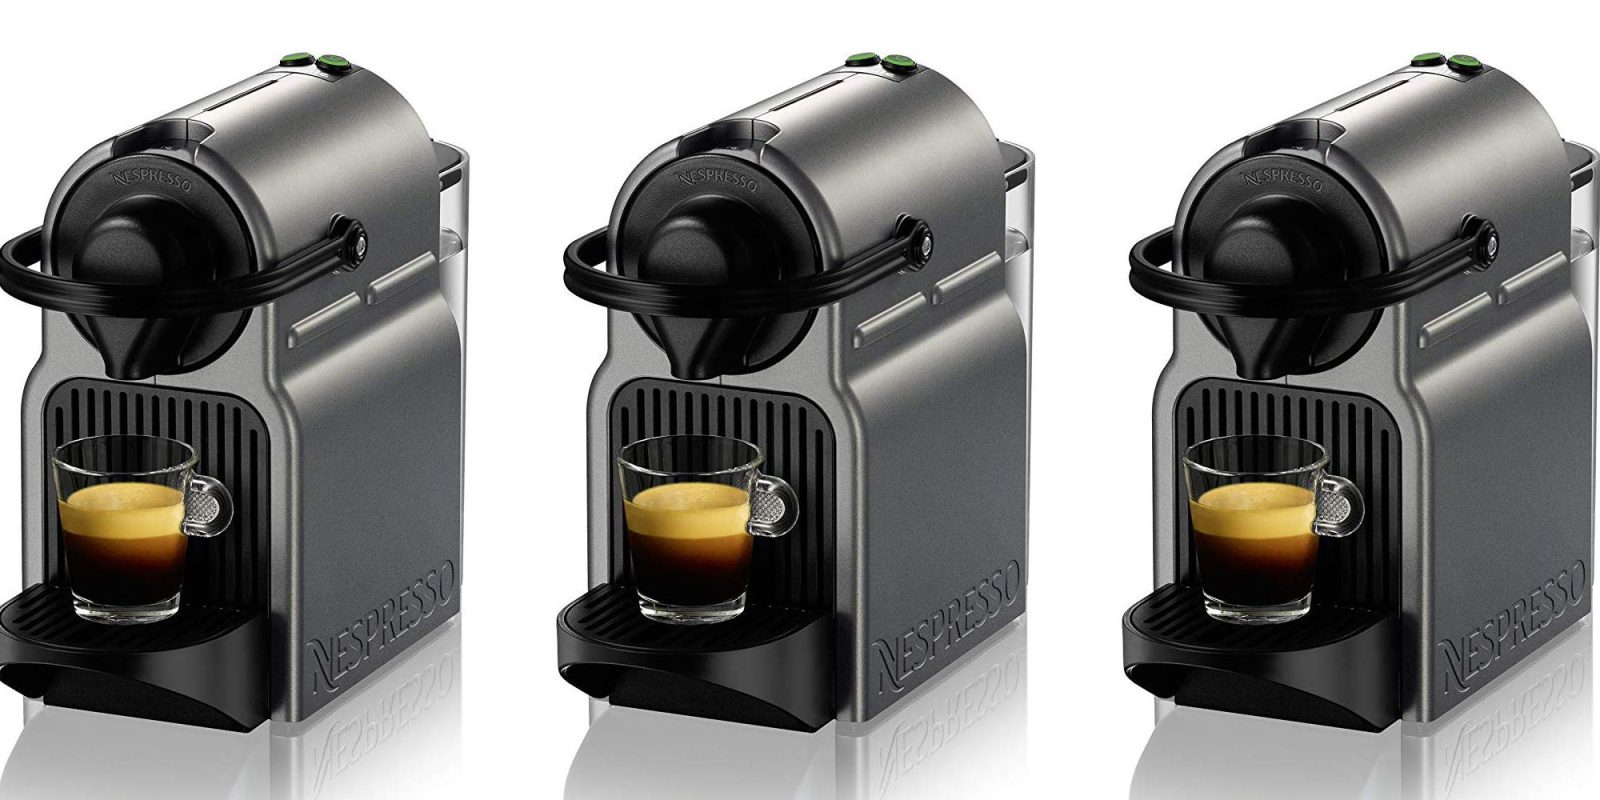 Breville's Nespresso Espresso Machine down to $80 for today only (Reg. $140+)